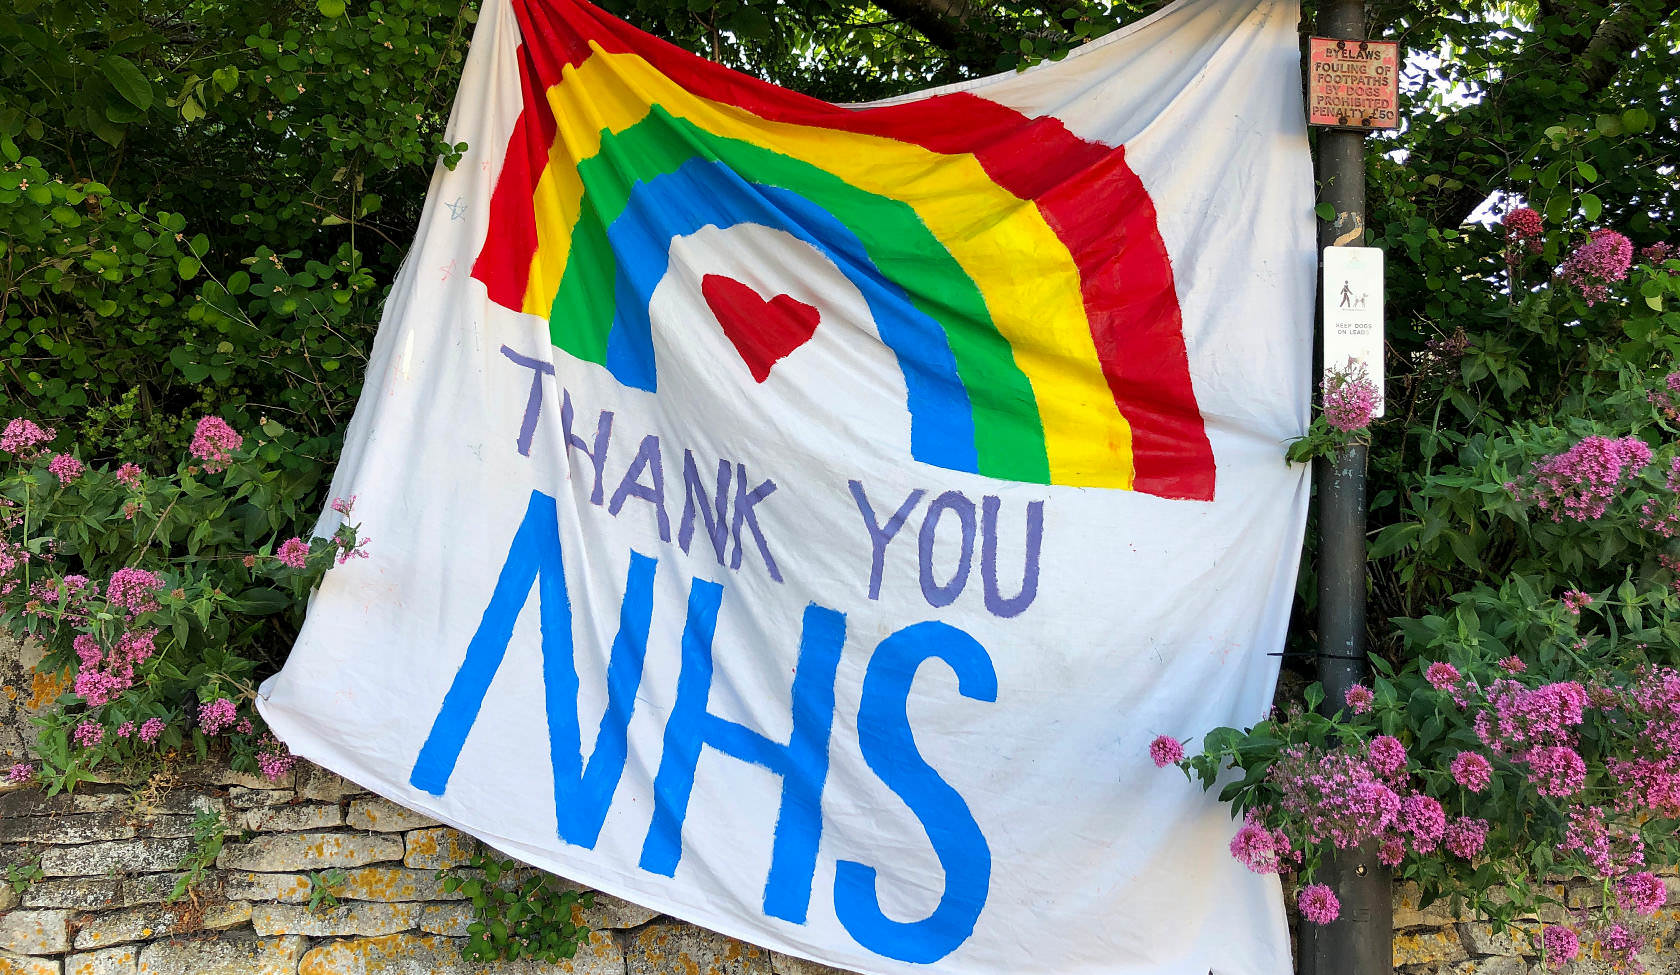 Photograph of a painted 'Thank You NHS' banner, used during the Corona Virus pandemic